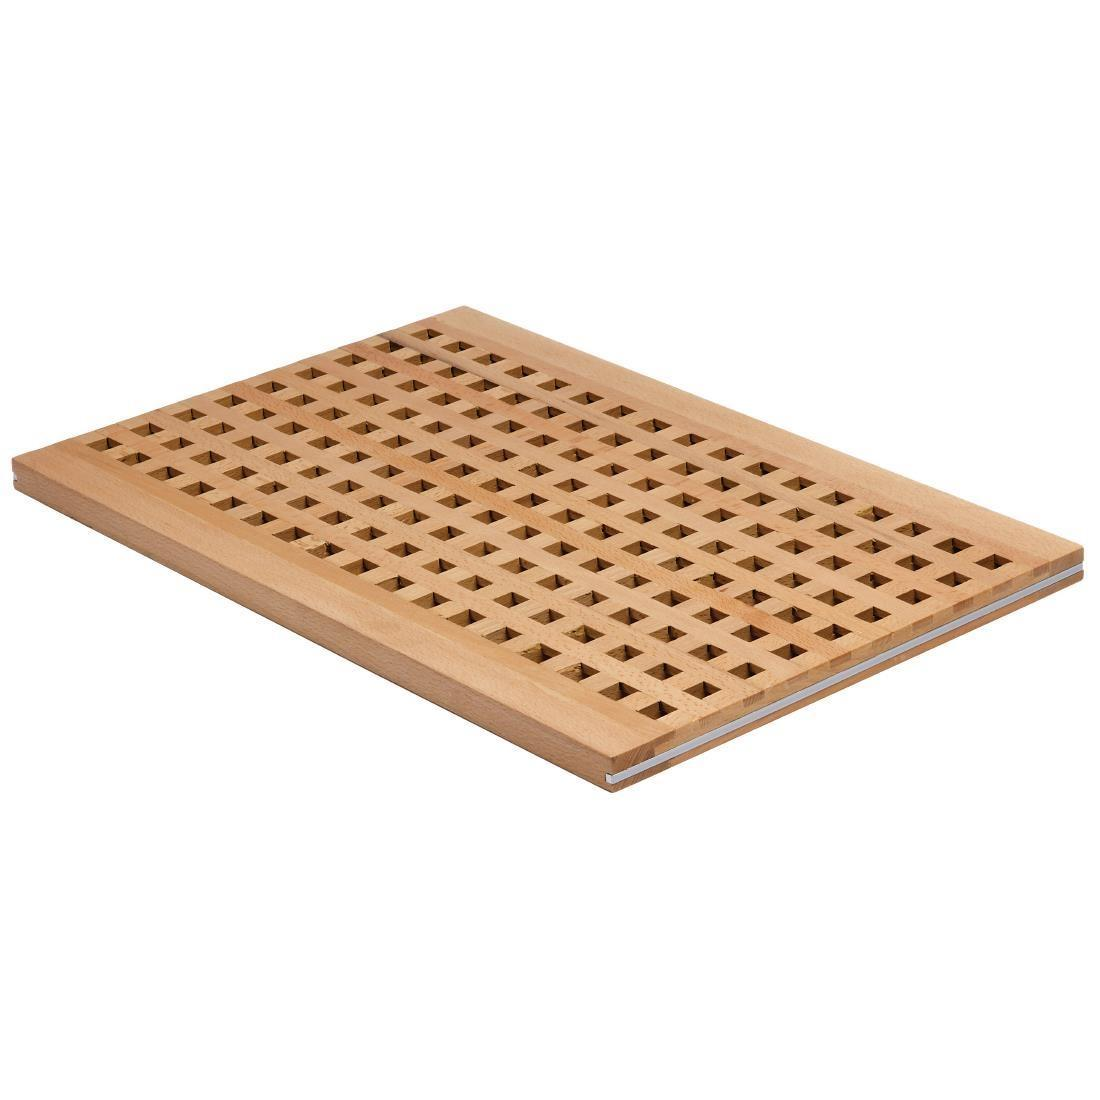 APS Breadstation Cutting Board - Each - GH394